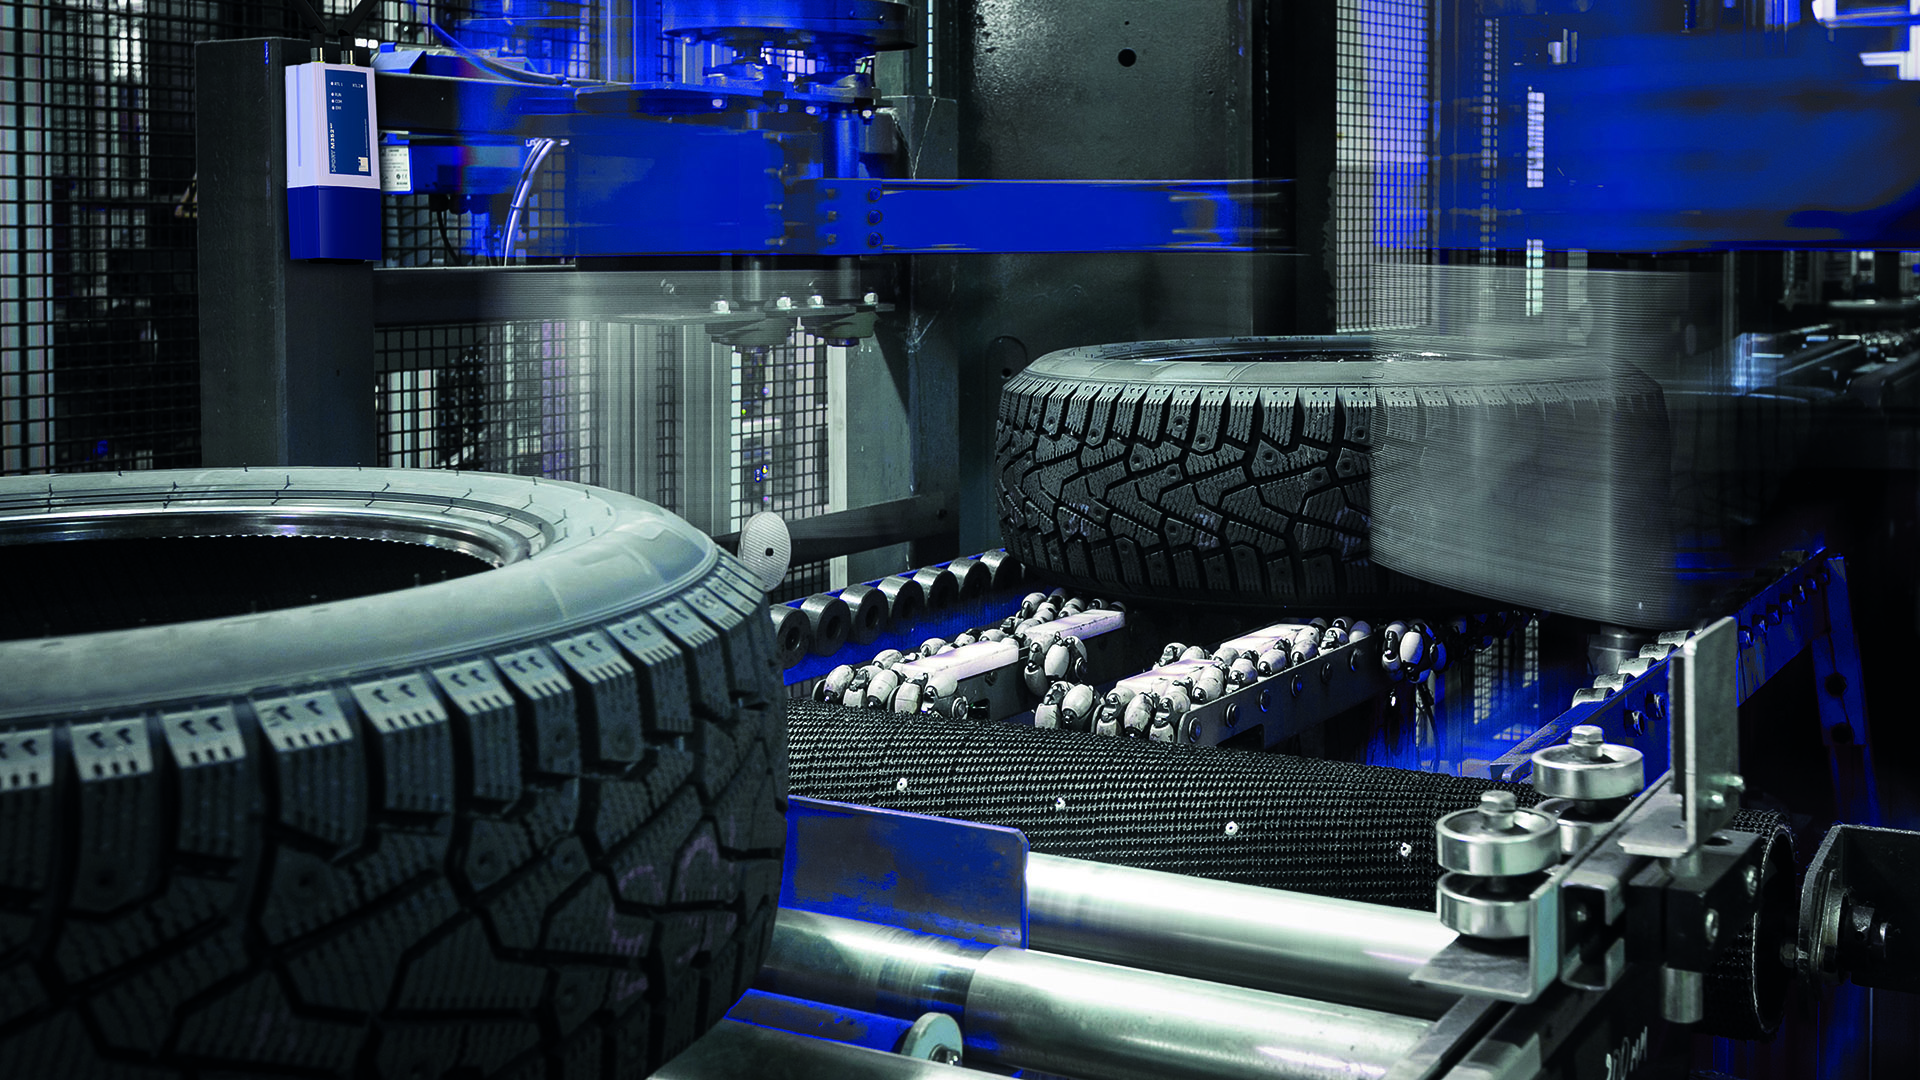 Tyre production chain